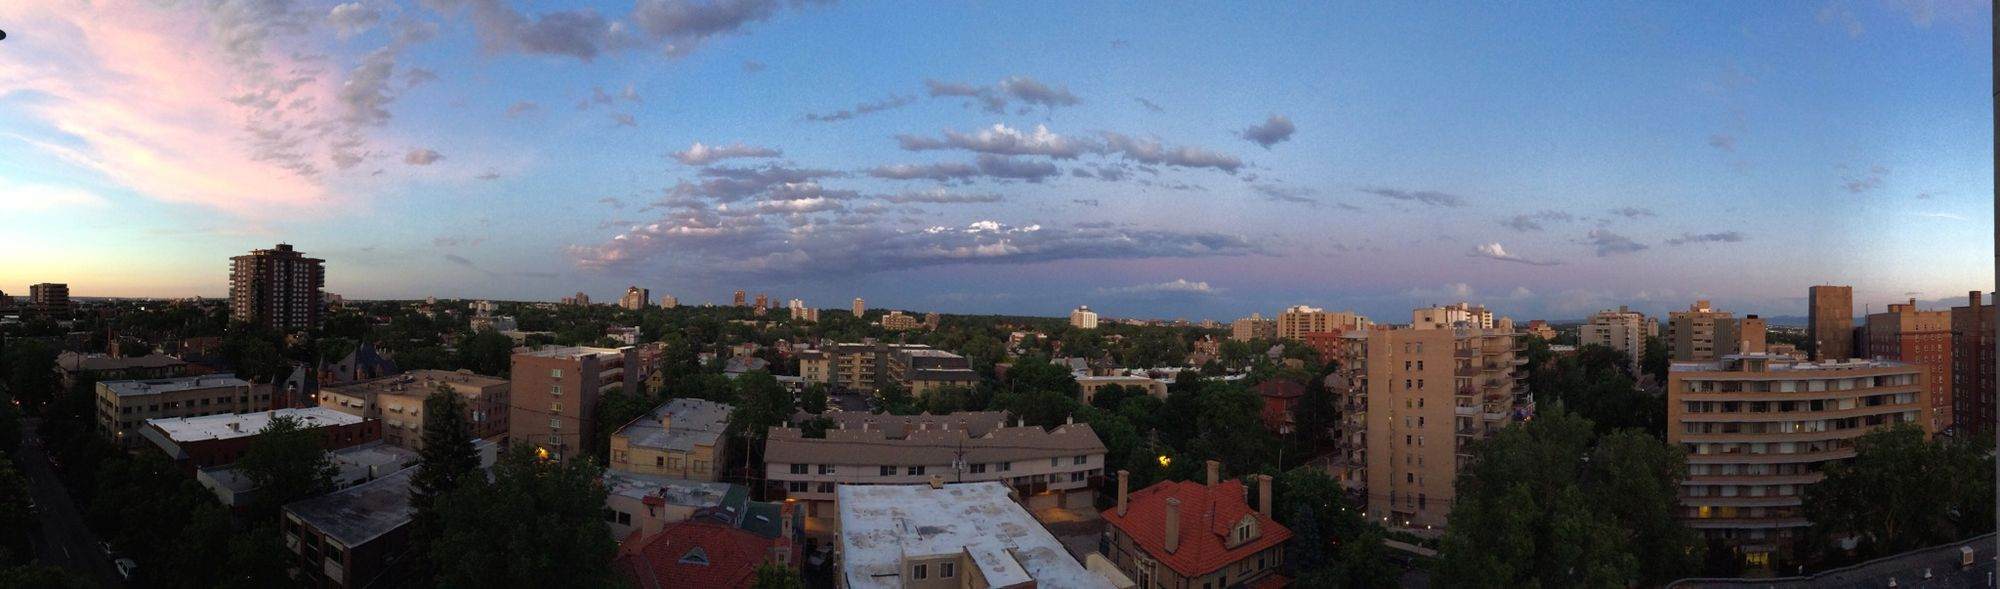 Denver Sunset Over Denver City Sunsets Panorama